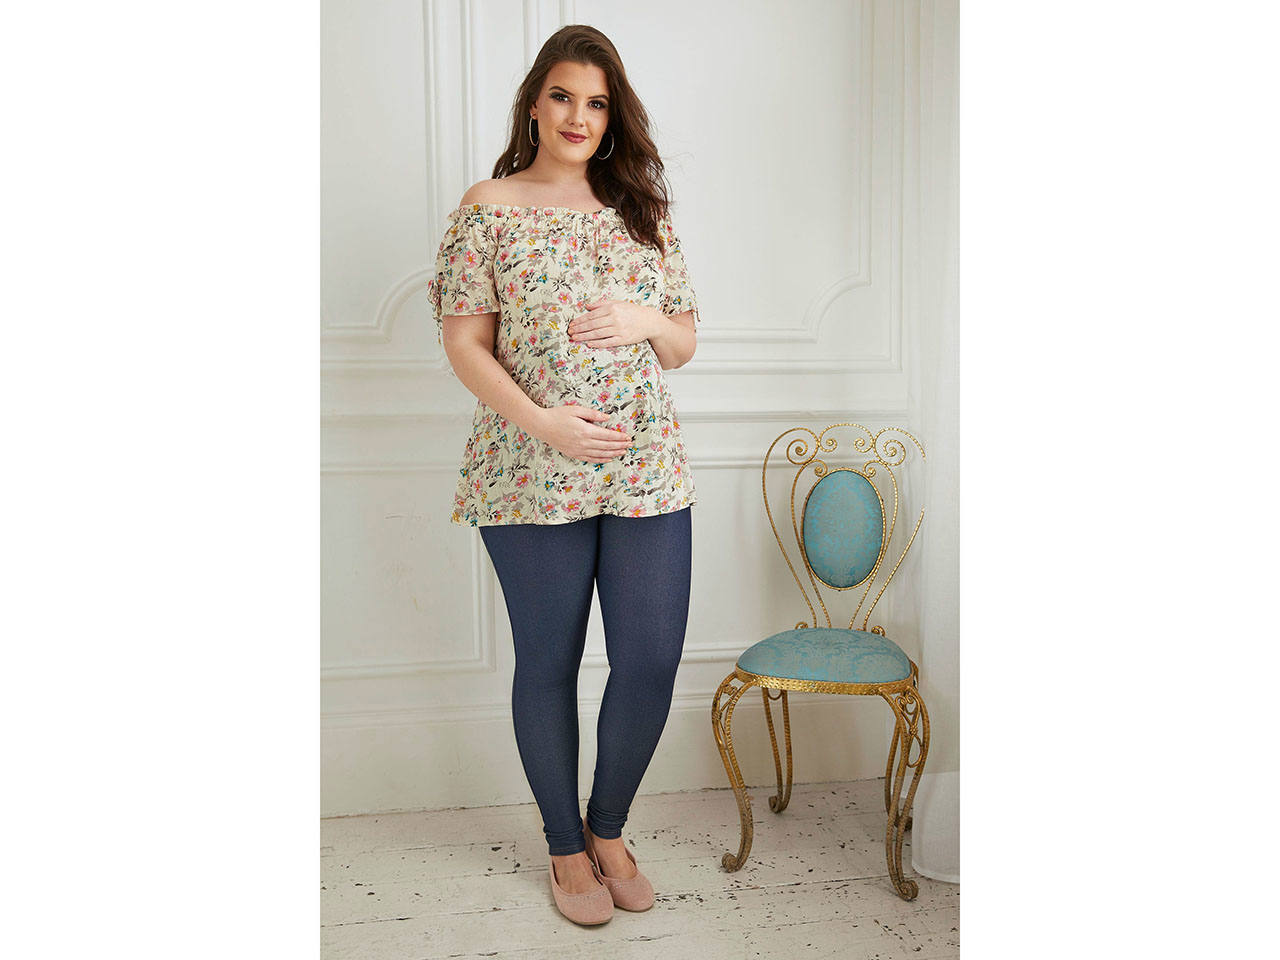 7be3e5f97b8 A pregnant woman in a floral maternity top Photo  Yours Clothing